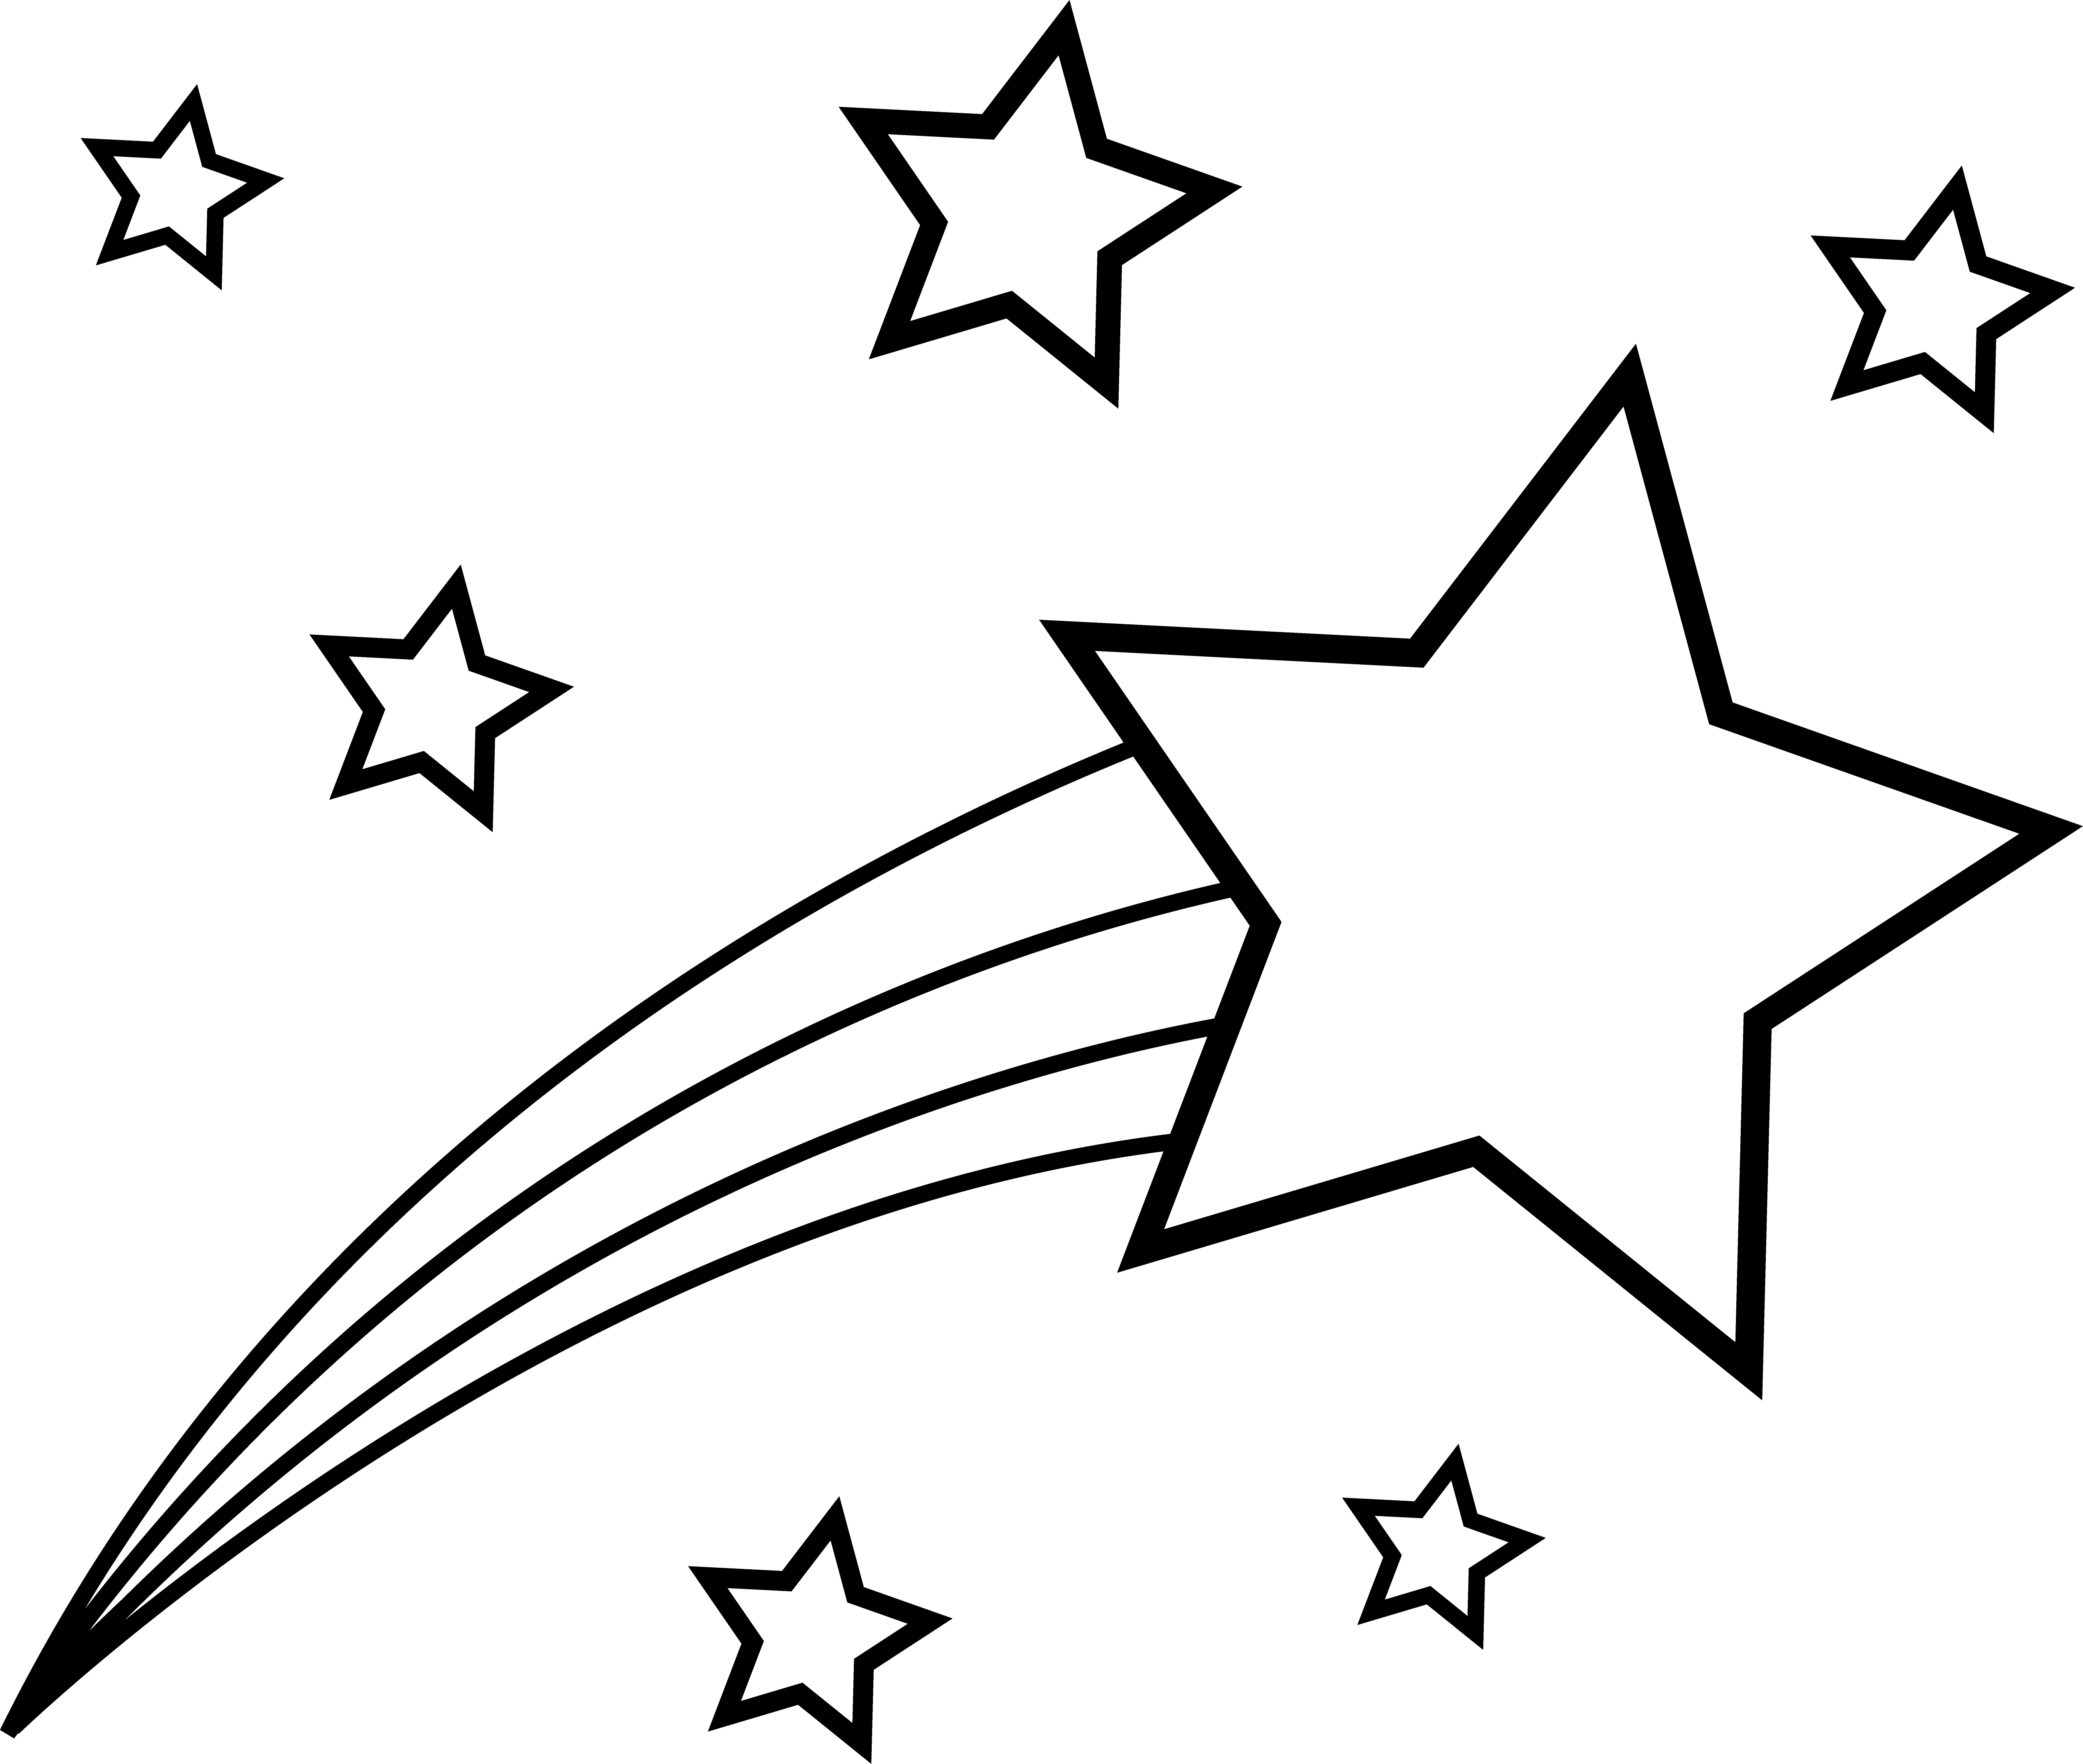 Fol art star clipart black and white png black and white space clip art - Google Search | Face Painting | Star stencil, Star ... png black and white